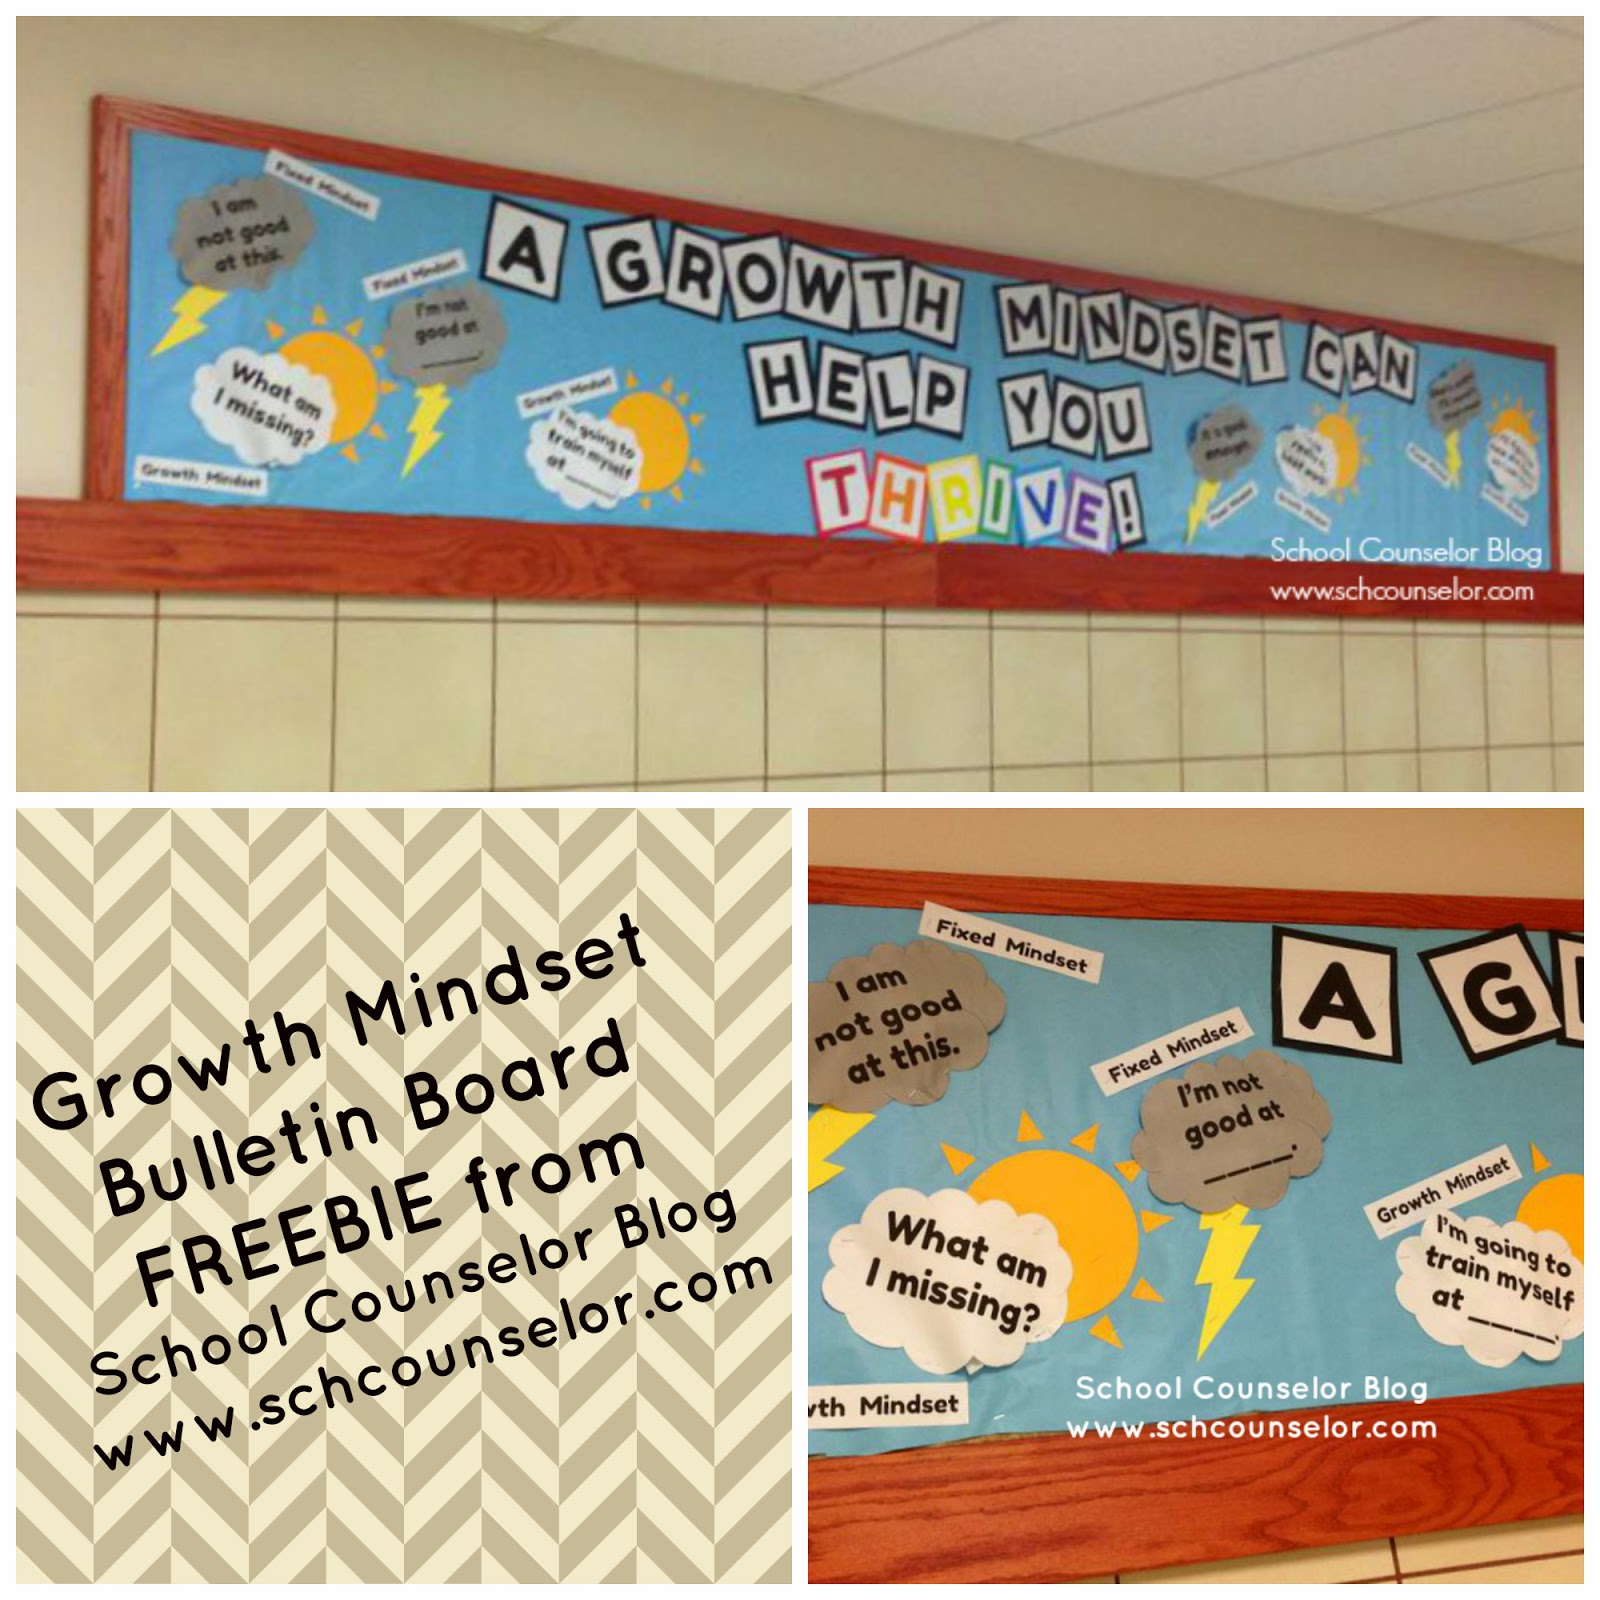 School Counselor Blog: A Growth Mindset Can Help You ...